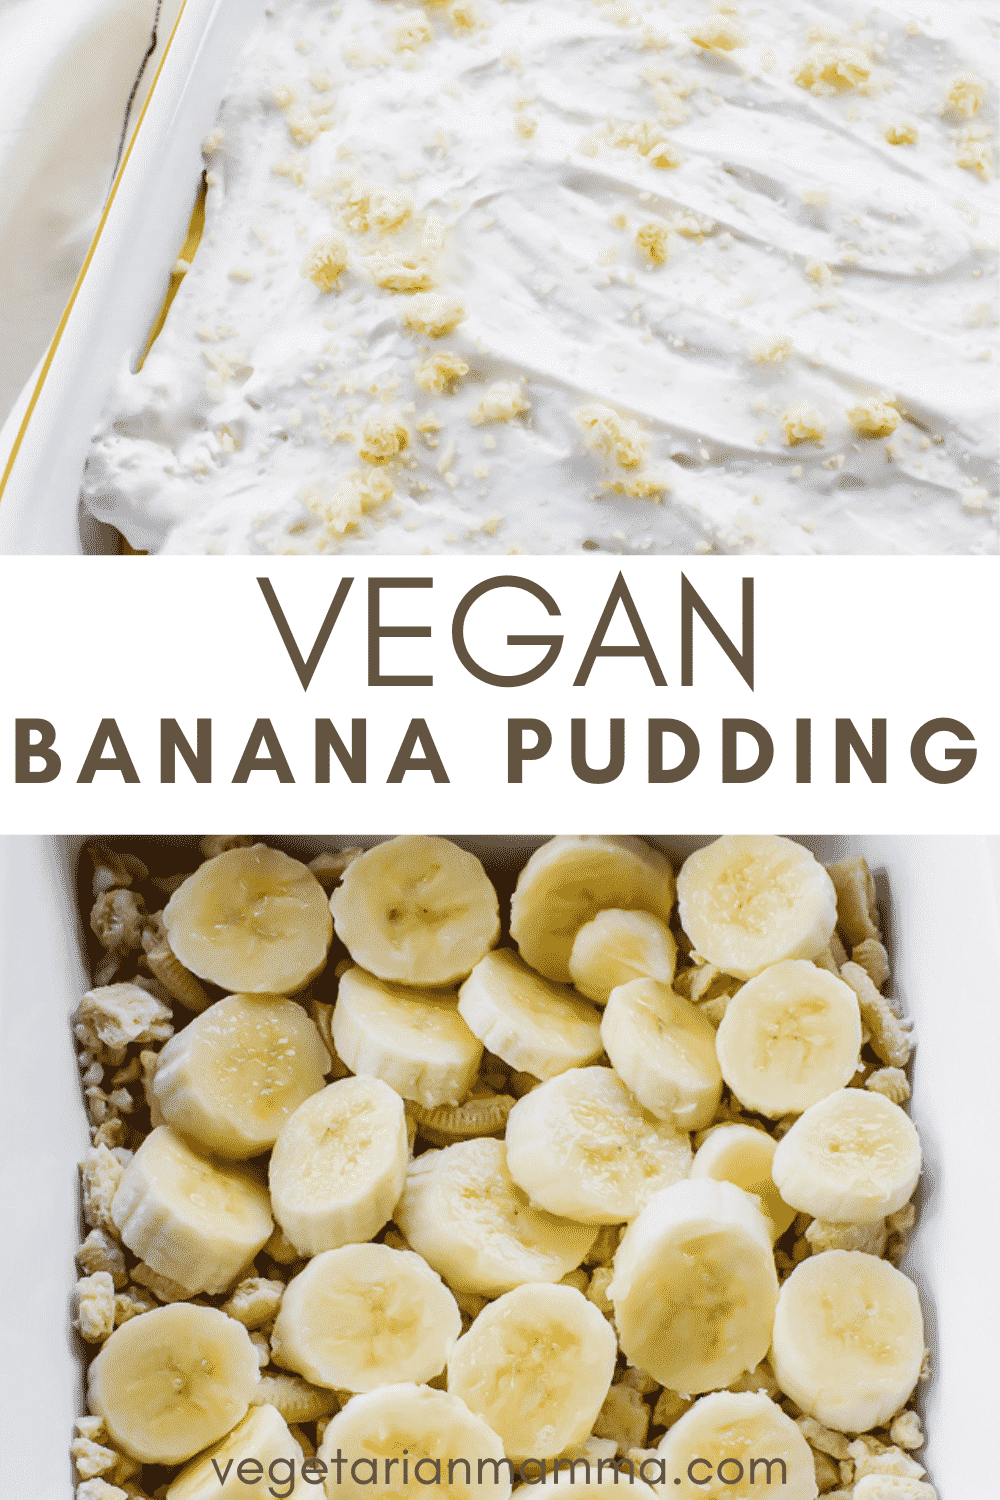 This vegan banana pudding layers sweet from scratch pudding, freshly sliced bananas, crumbled vanilla cookies and vegan whipped cream. Minimal ingredients come together quickly to create a comforting vegan dessert. #pudding #veganpudding #bananapudding #veganbananapudding #dairyfreepudding